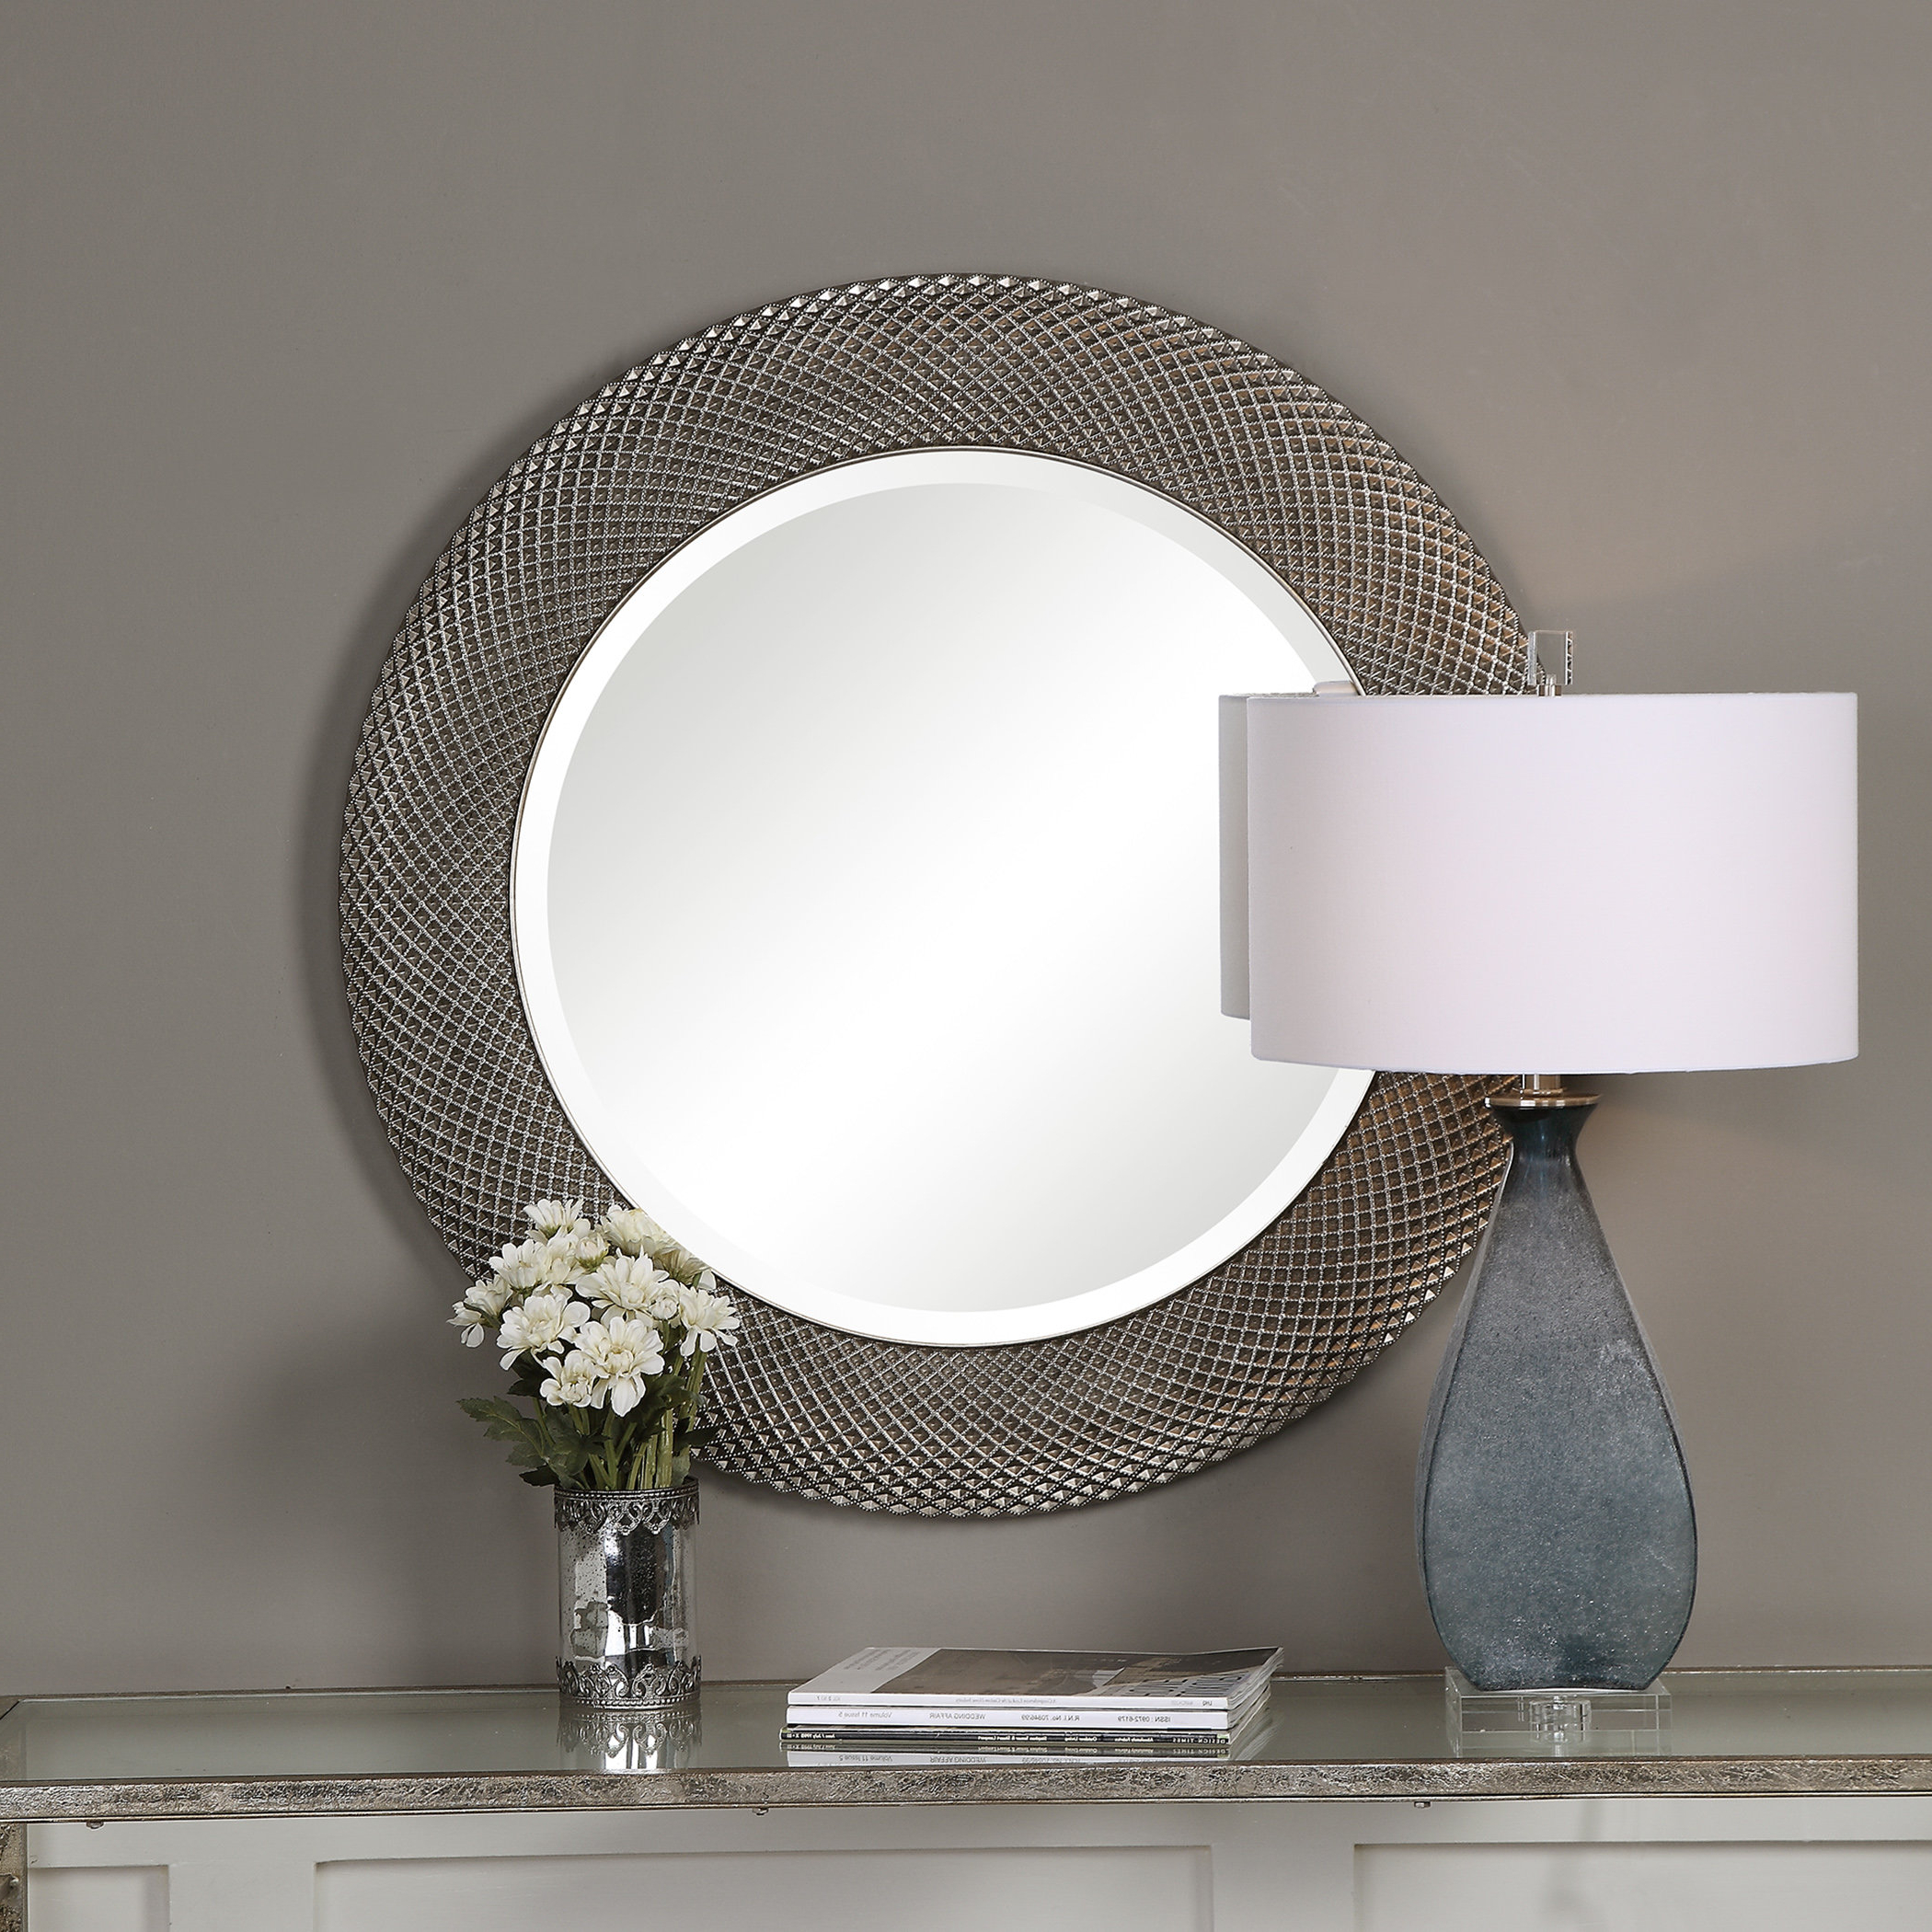 Mcneal Round Accent Mirror Within Well Known Round Eclectic Accent Mirrors (Gallery 12 of 20)